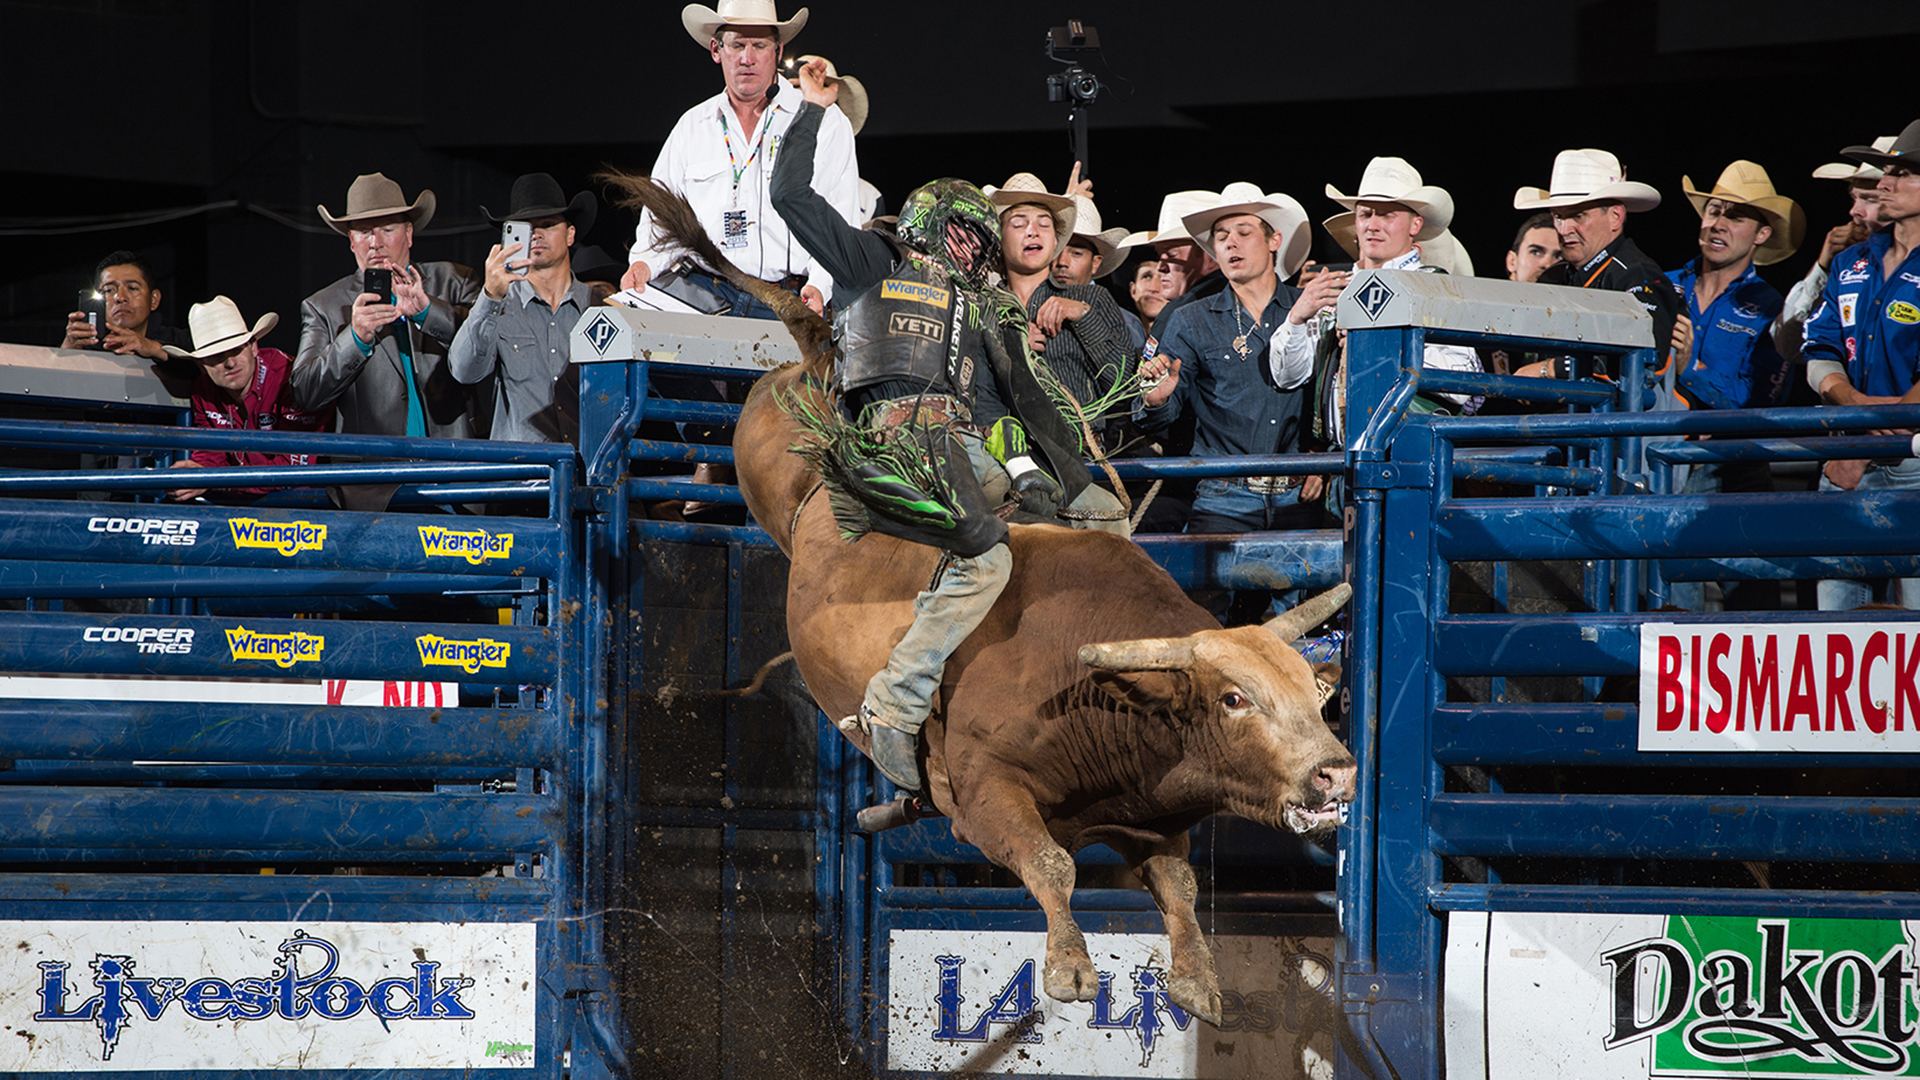 Heroics in Bismarck: Outlaw leads Team Cooper Tires to victory during memorable night of eight 90-point rides